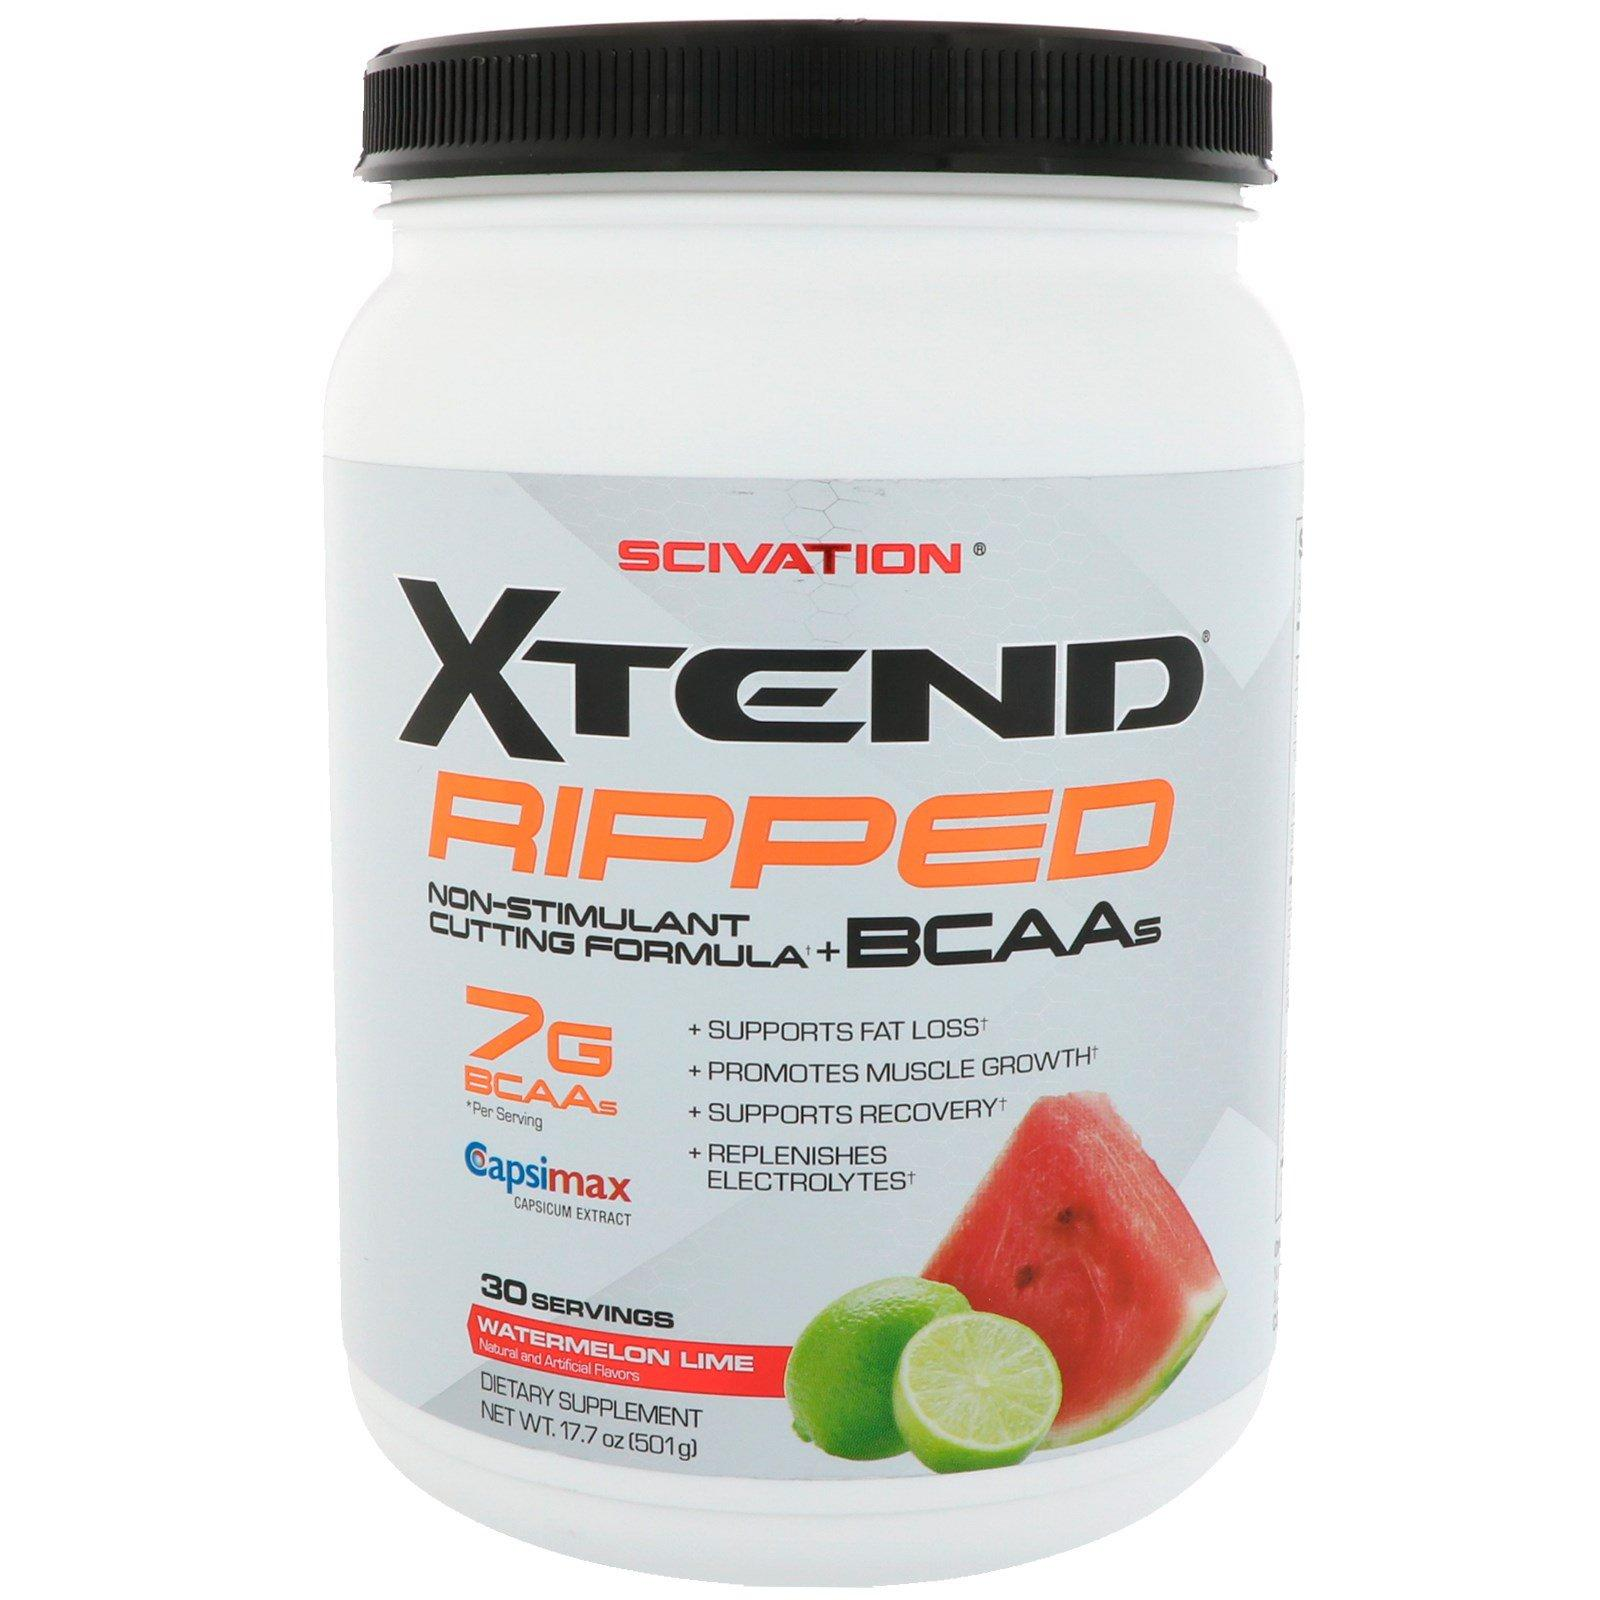 Amino Acids Brands Acid Supplements On Sale Prices Set Ultimate Nutrition Bcaa 500mg 120 Caps Scivation Xtend Ripped 30 Servings Watermelon Lime